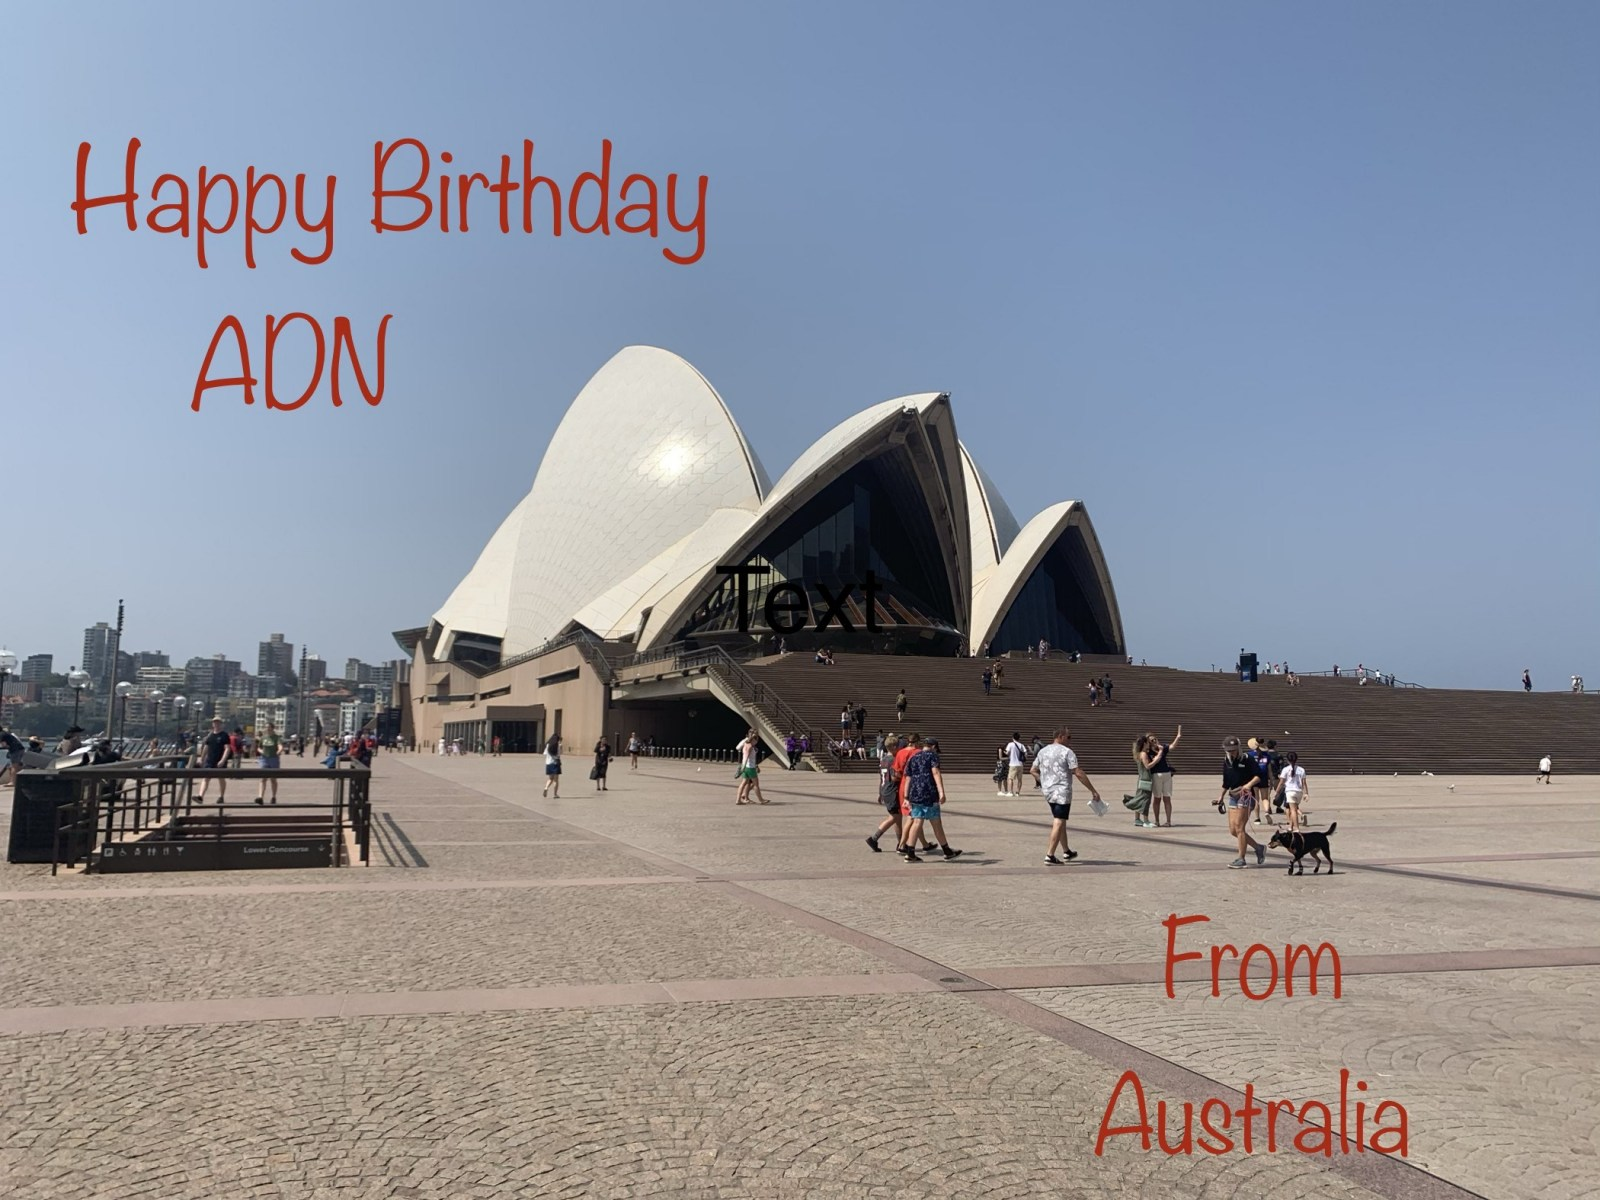 Birthday Wishes from Australia